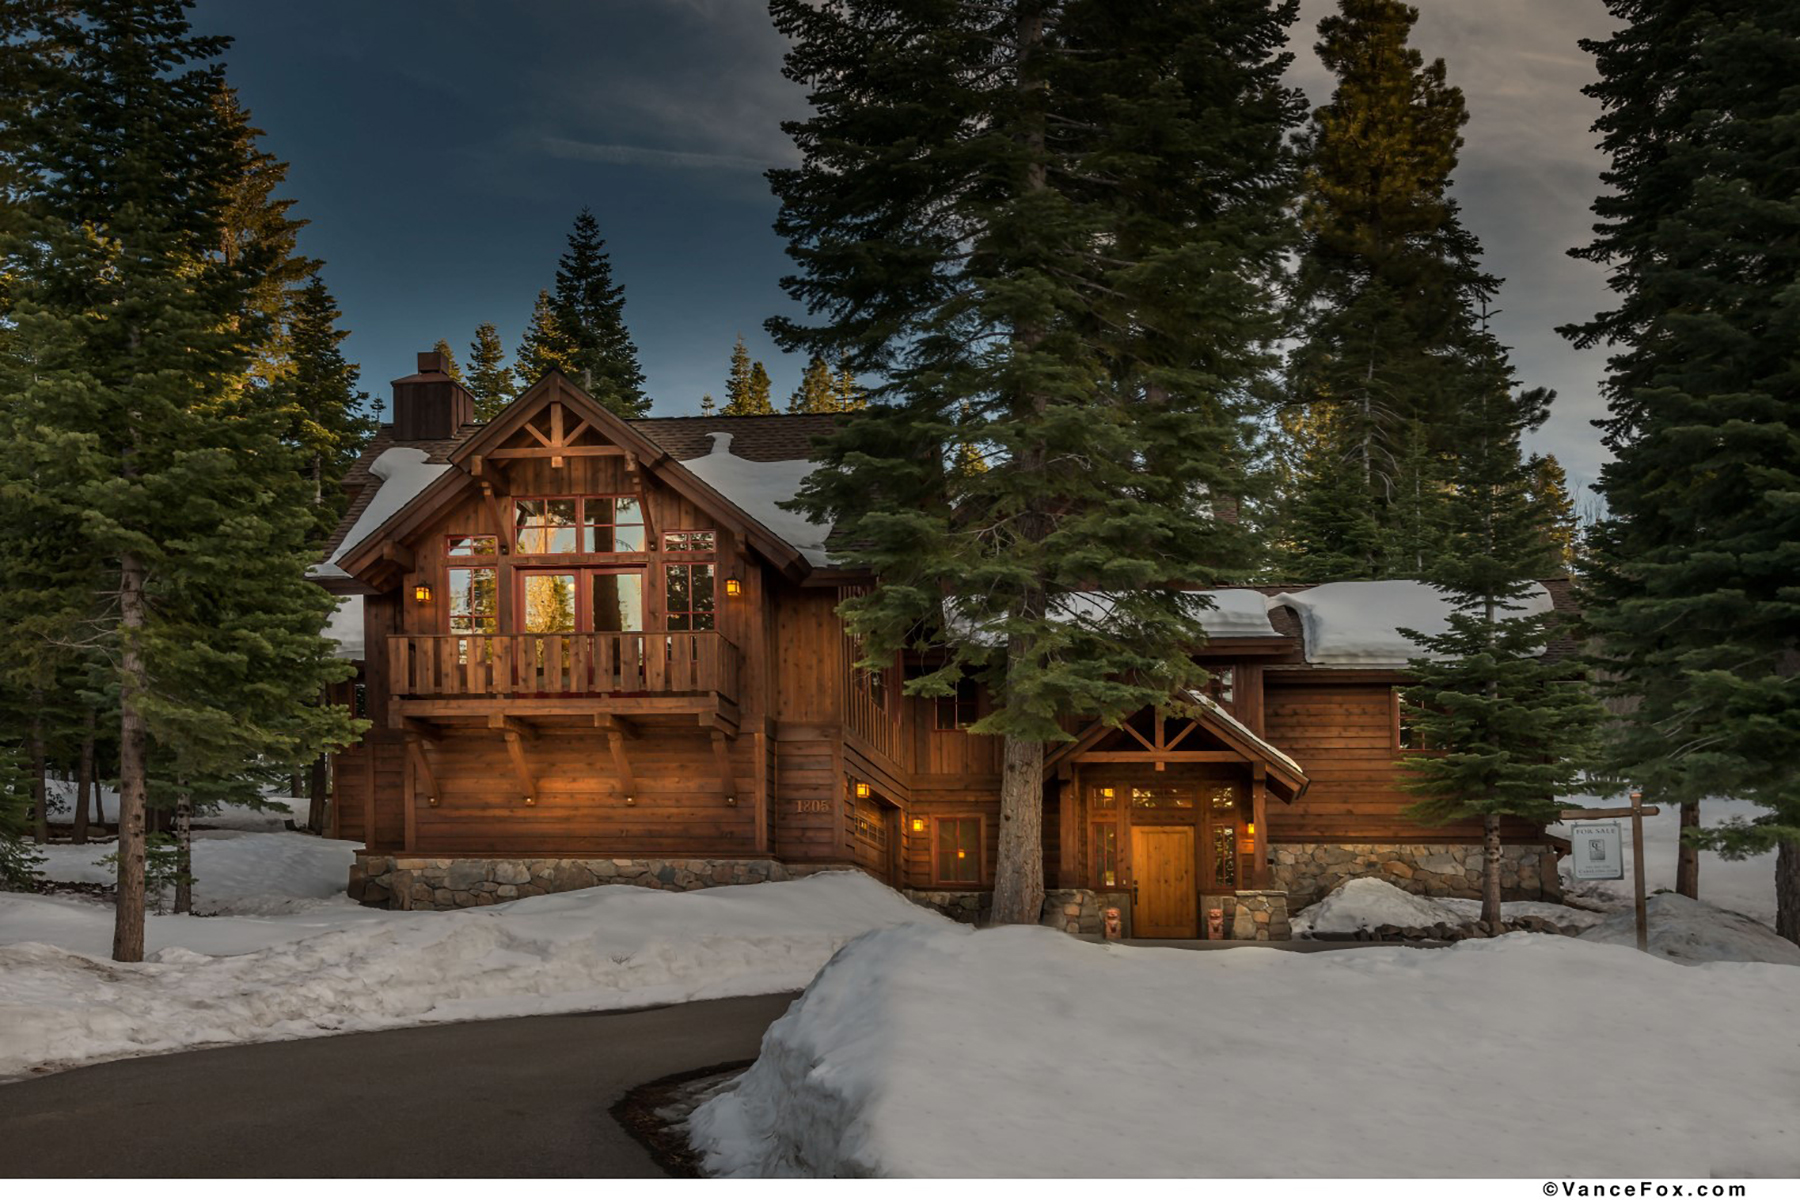 Property for Active at 1805 Wood Points Way, Truckee, CA 1805 Woods Point Way Truckee, California 96161 United States